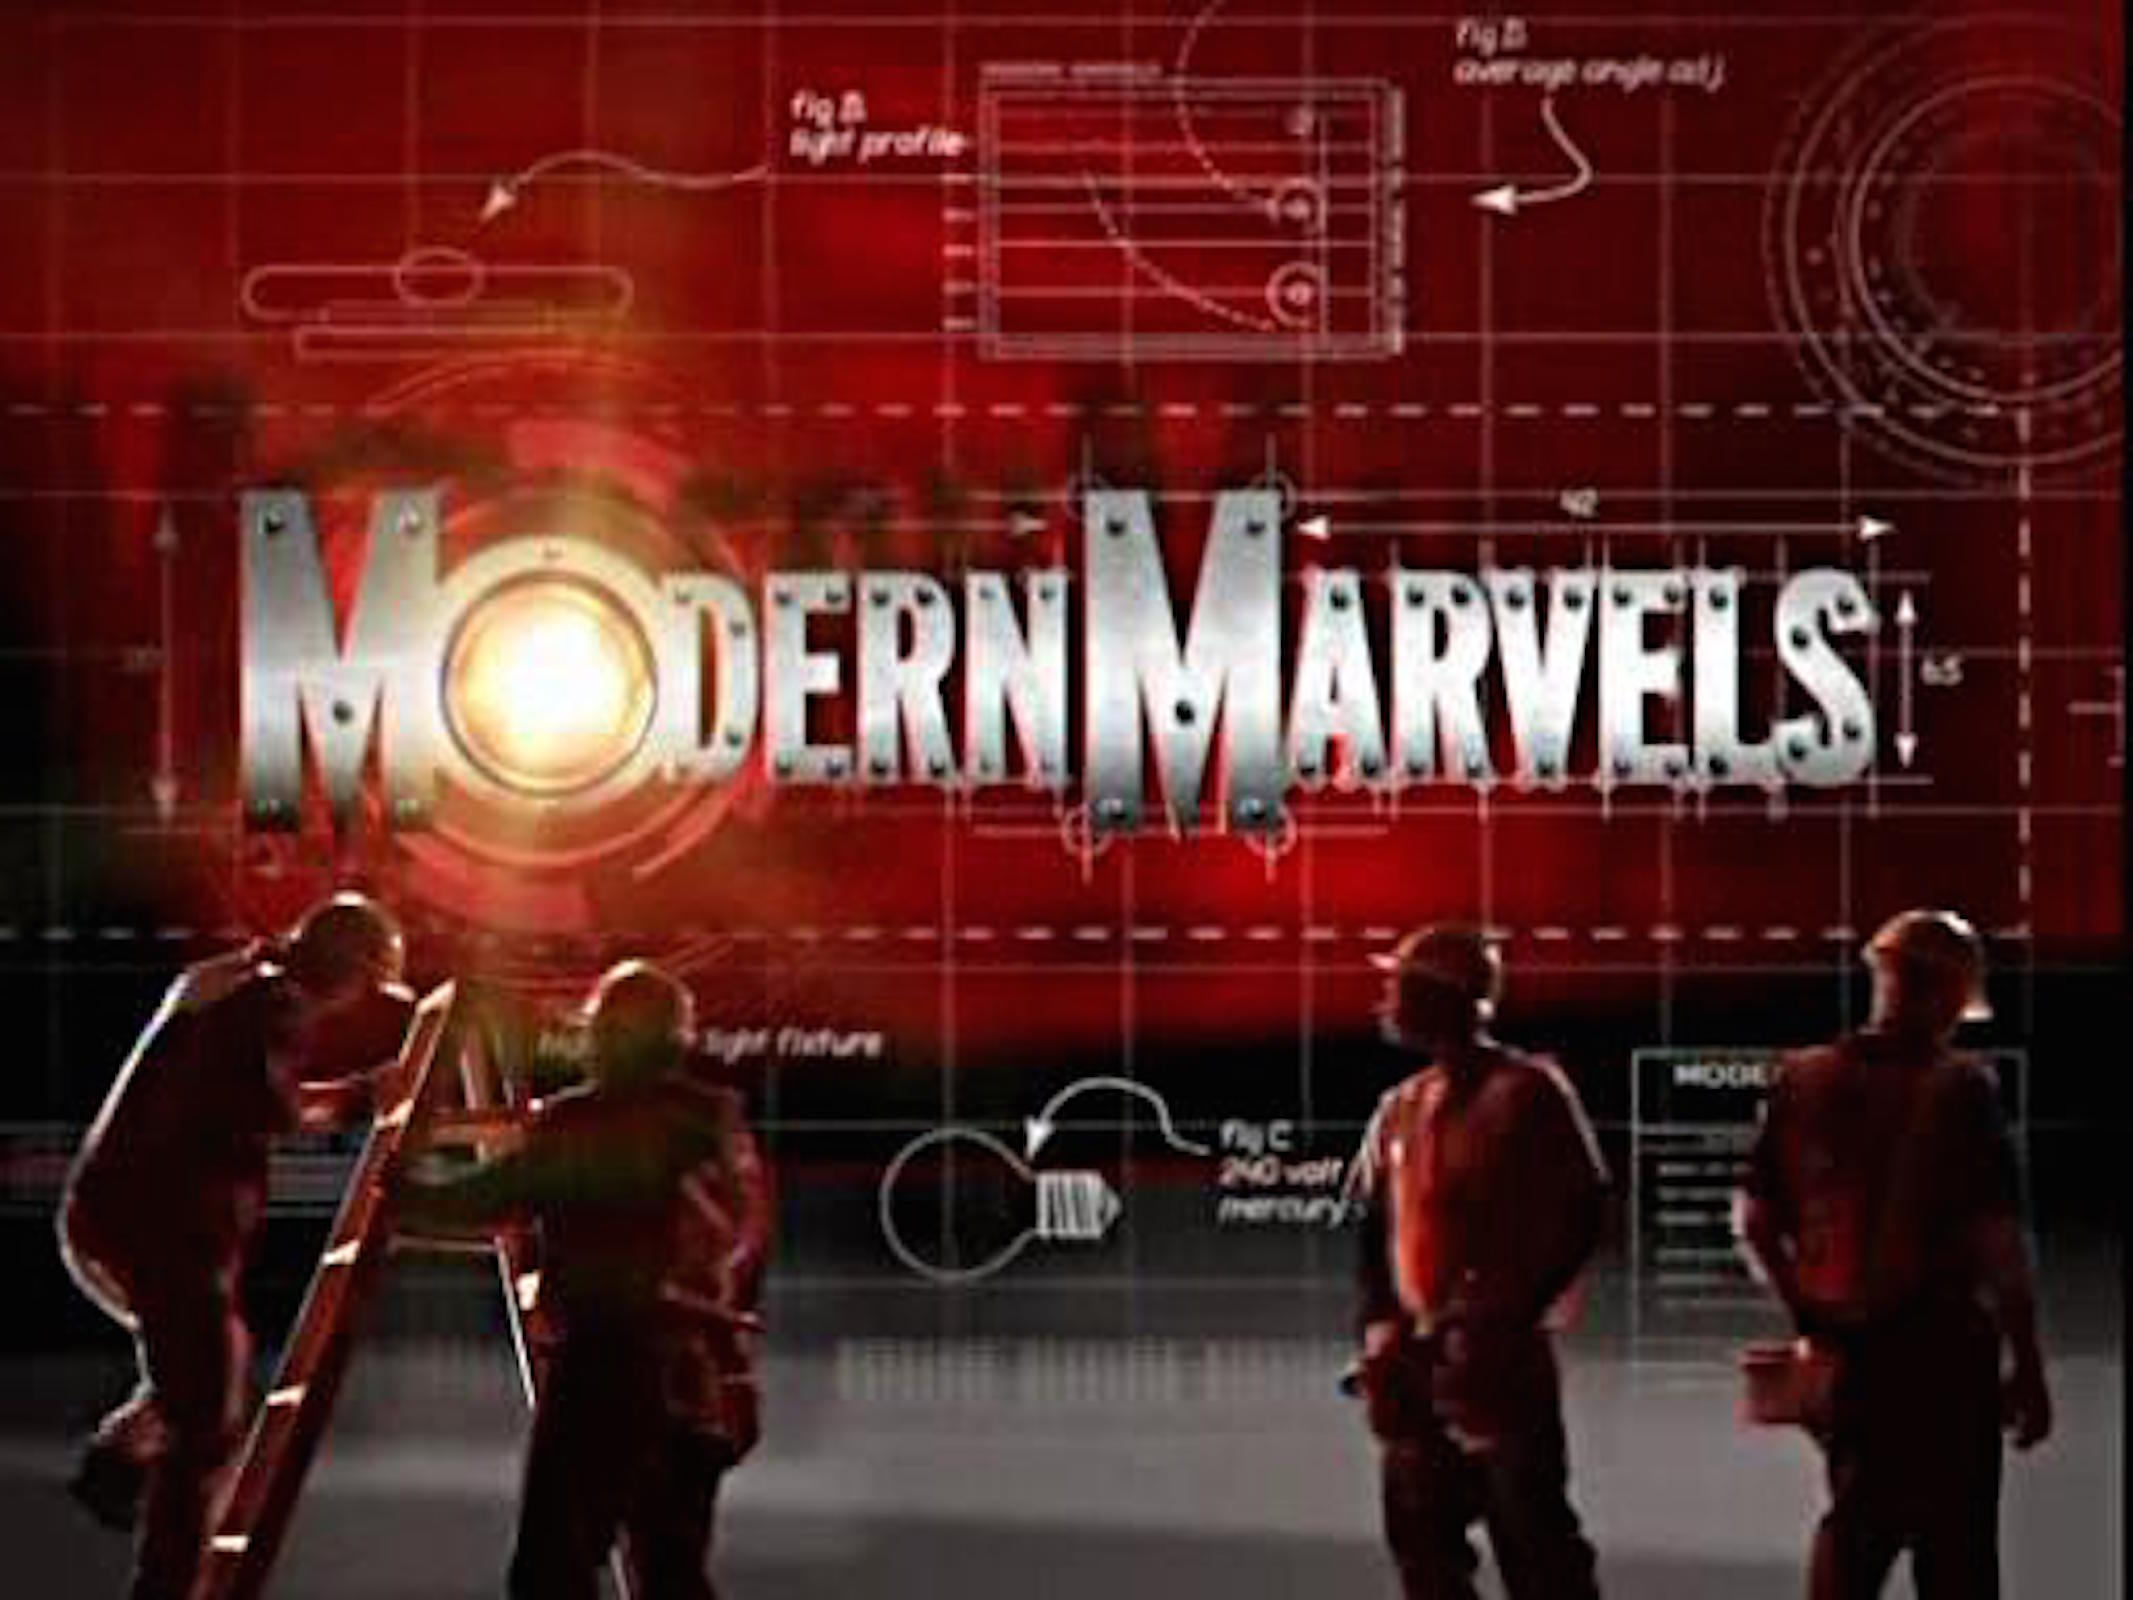 Modern_Marvels_title_credits copy.jpg